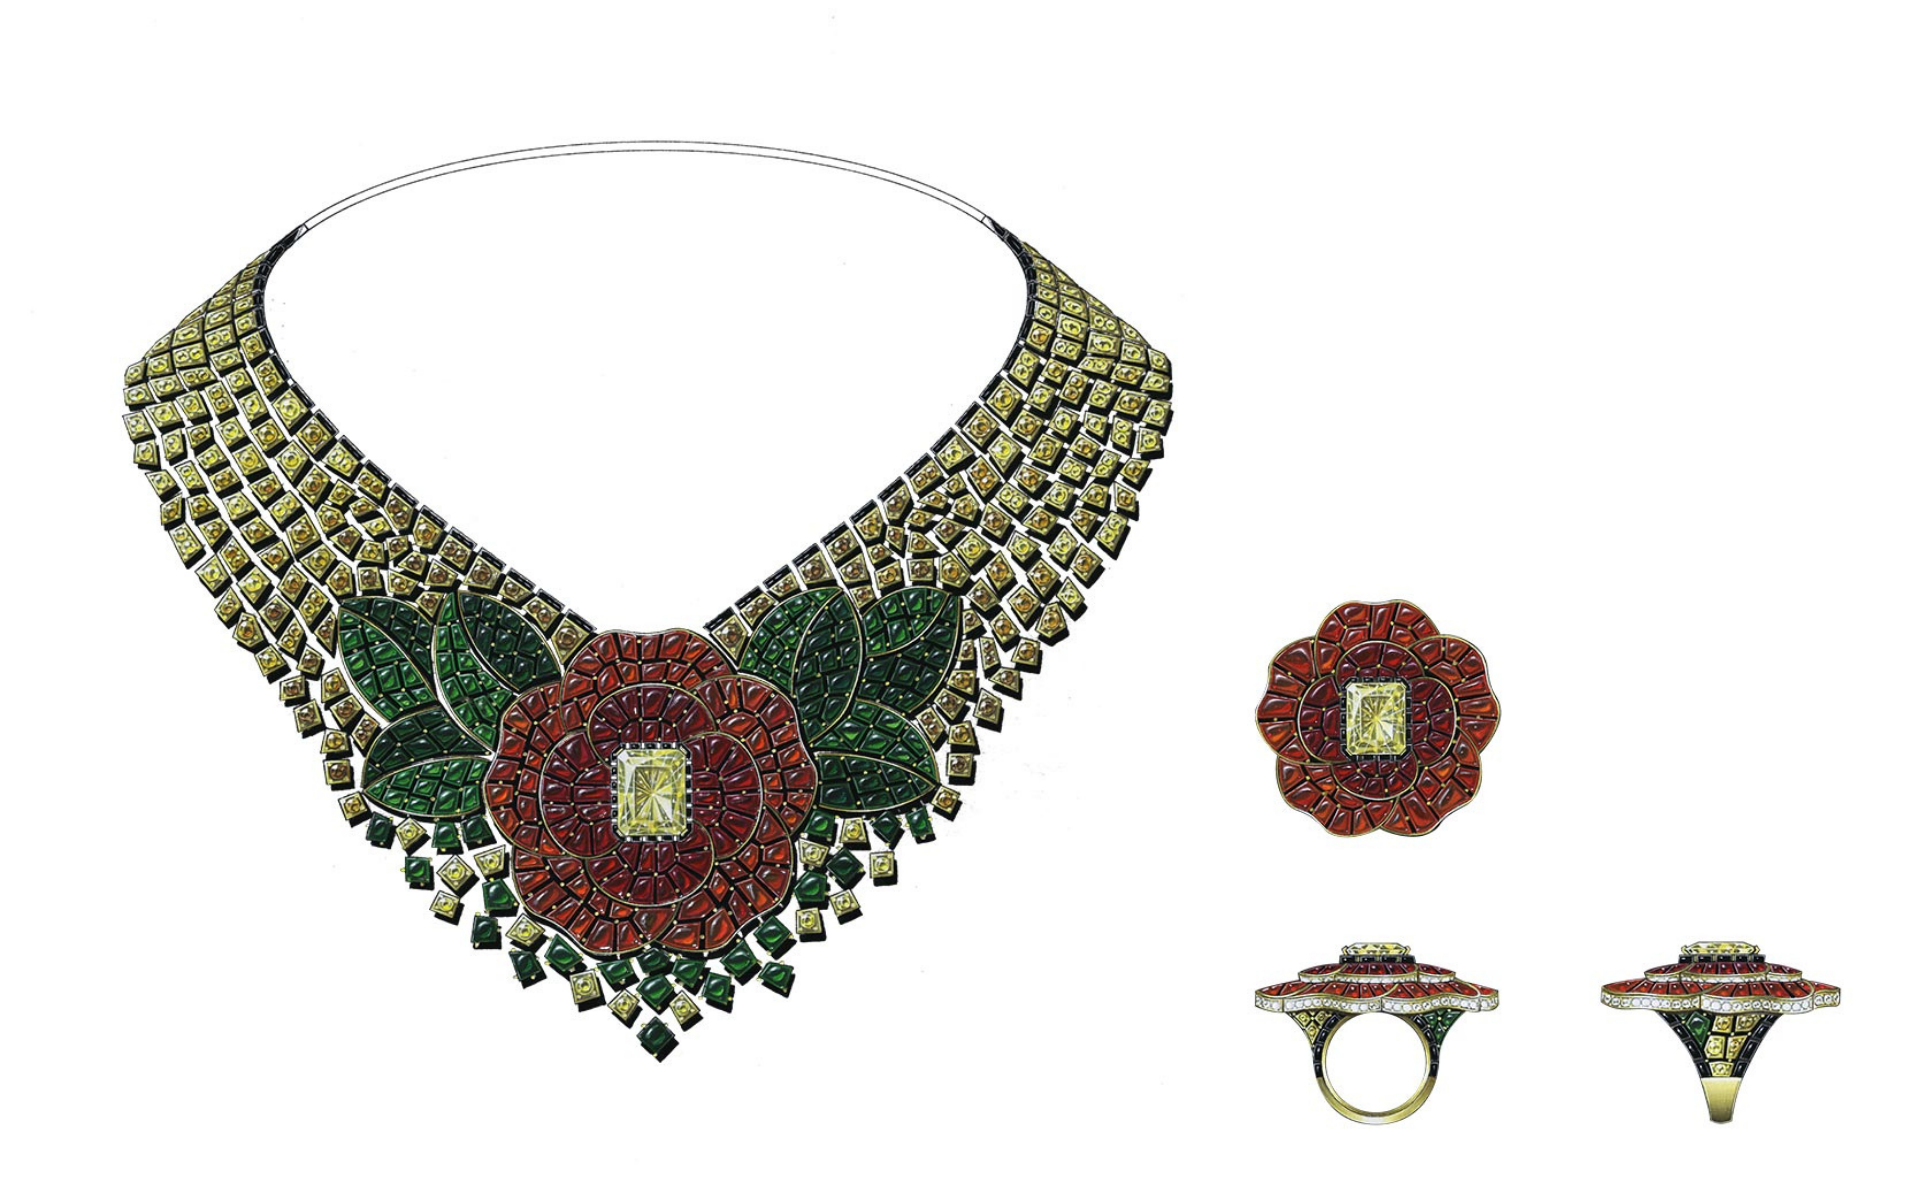 Camélia Byzantin necklace and ring with yellow diamonds, carnelians and fire opals